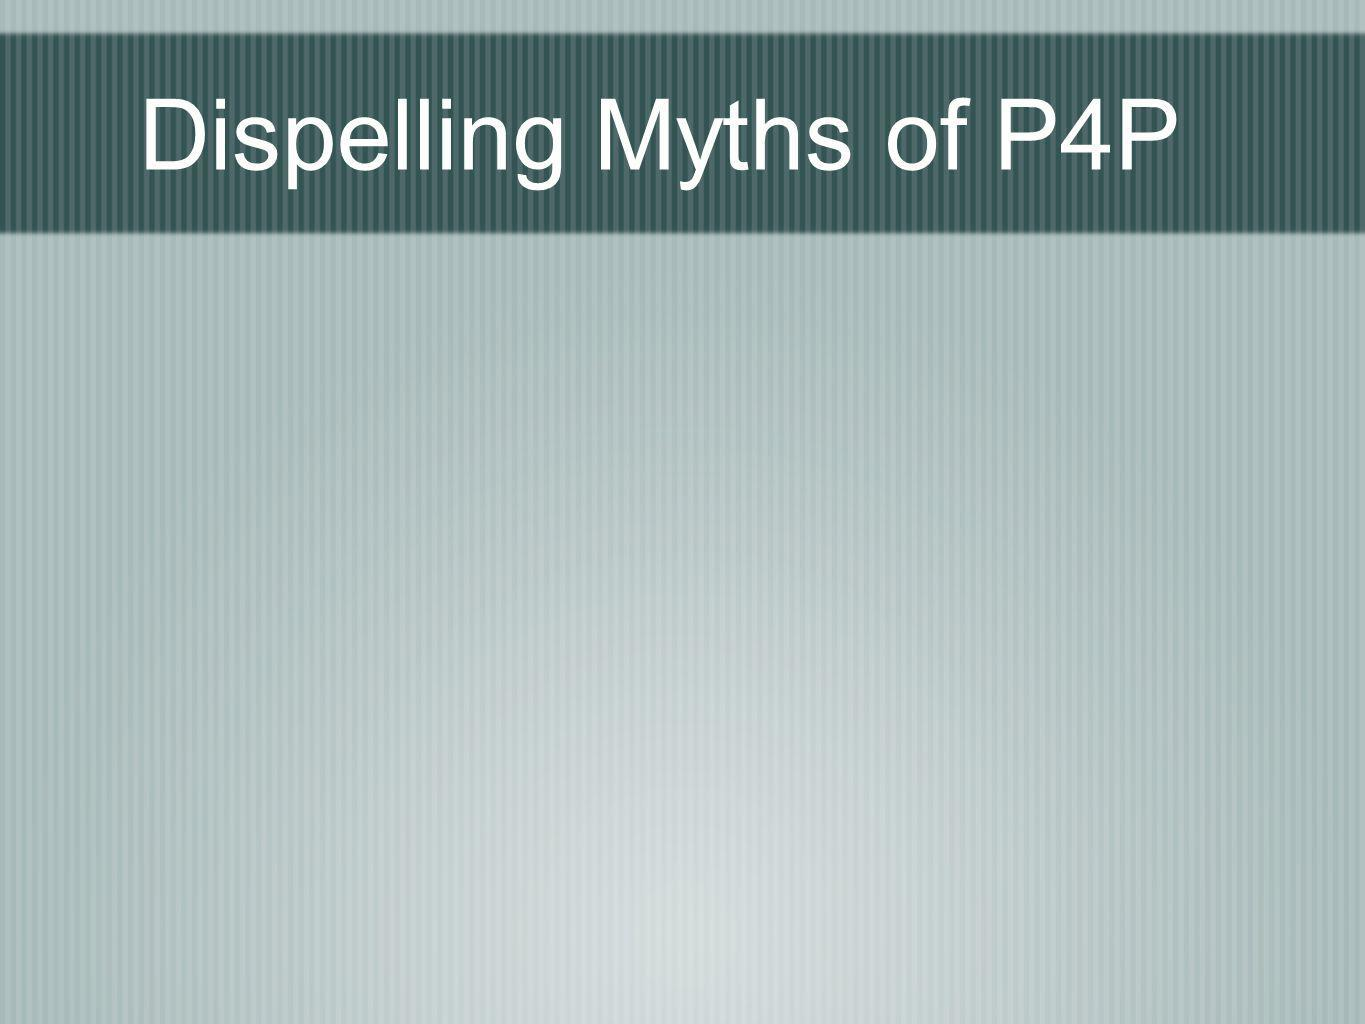 Dispelling Myths of P4P